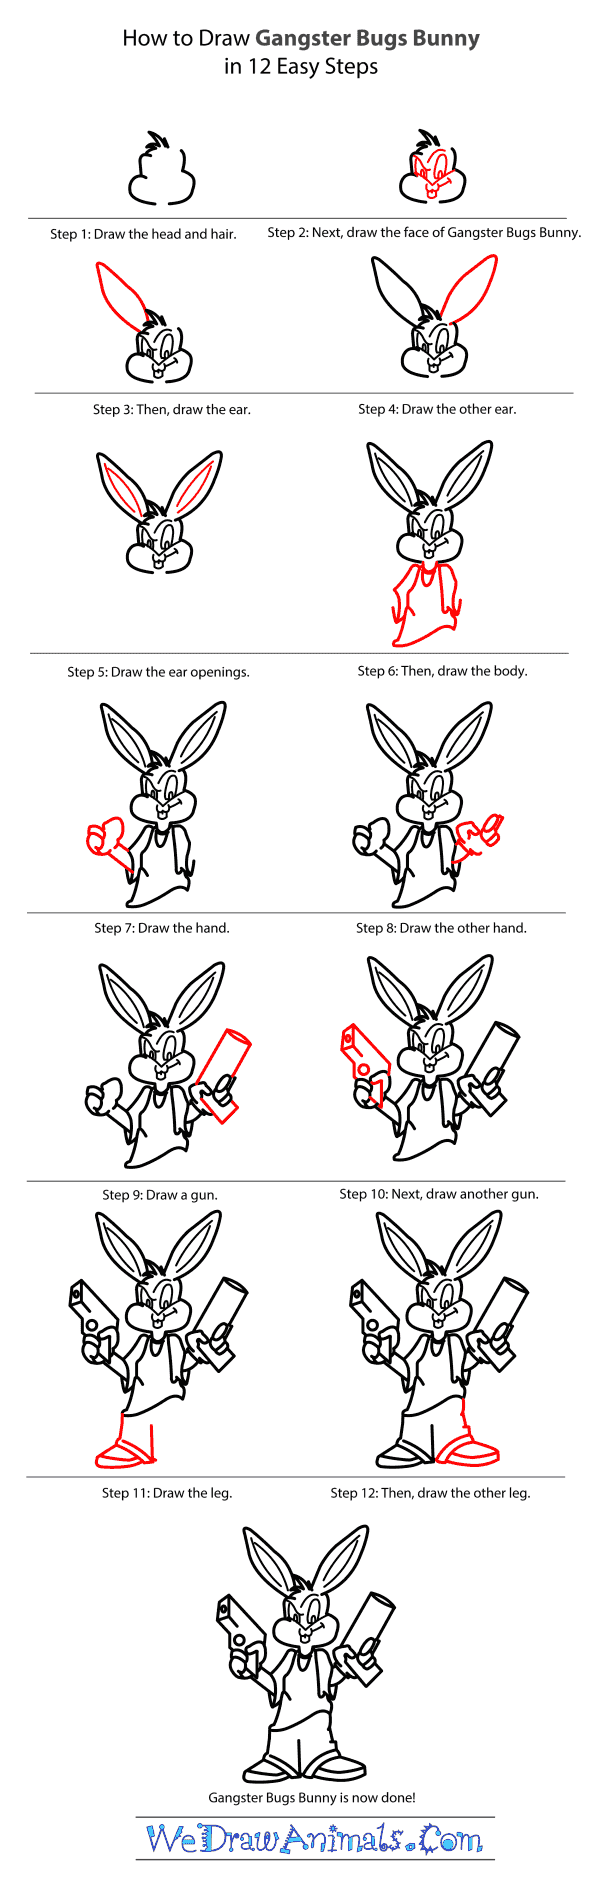 How To Draw Gangster Bugs Bunny From Looney Tunes Stepbystep Tutorial